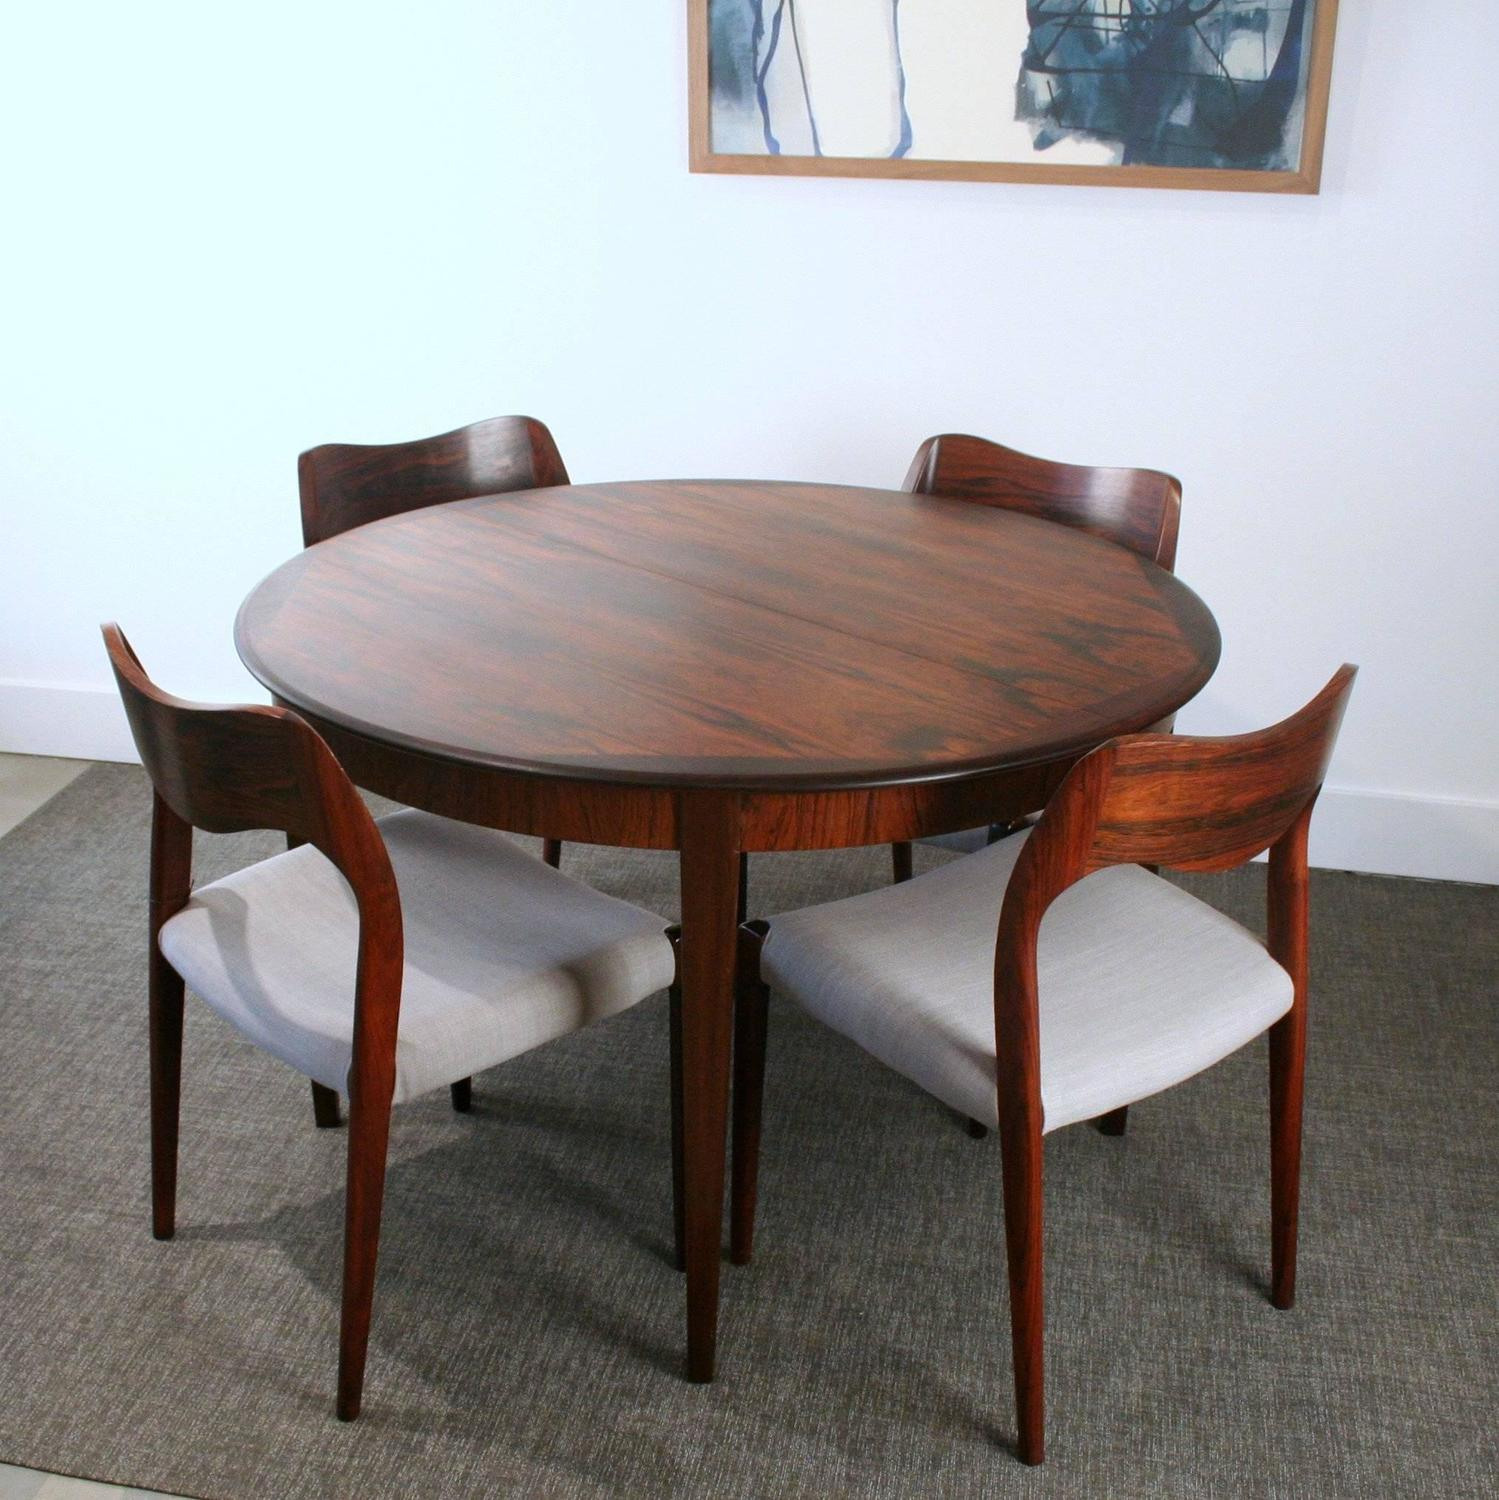 Vintage Danish Rosewood Round Dining Table For Sale at 1stdibs : IMG2488z from www.1stdibs.com size 1499 x 1500 jpeg 215kB